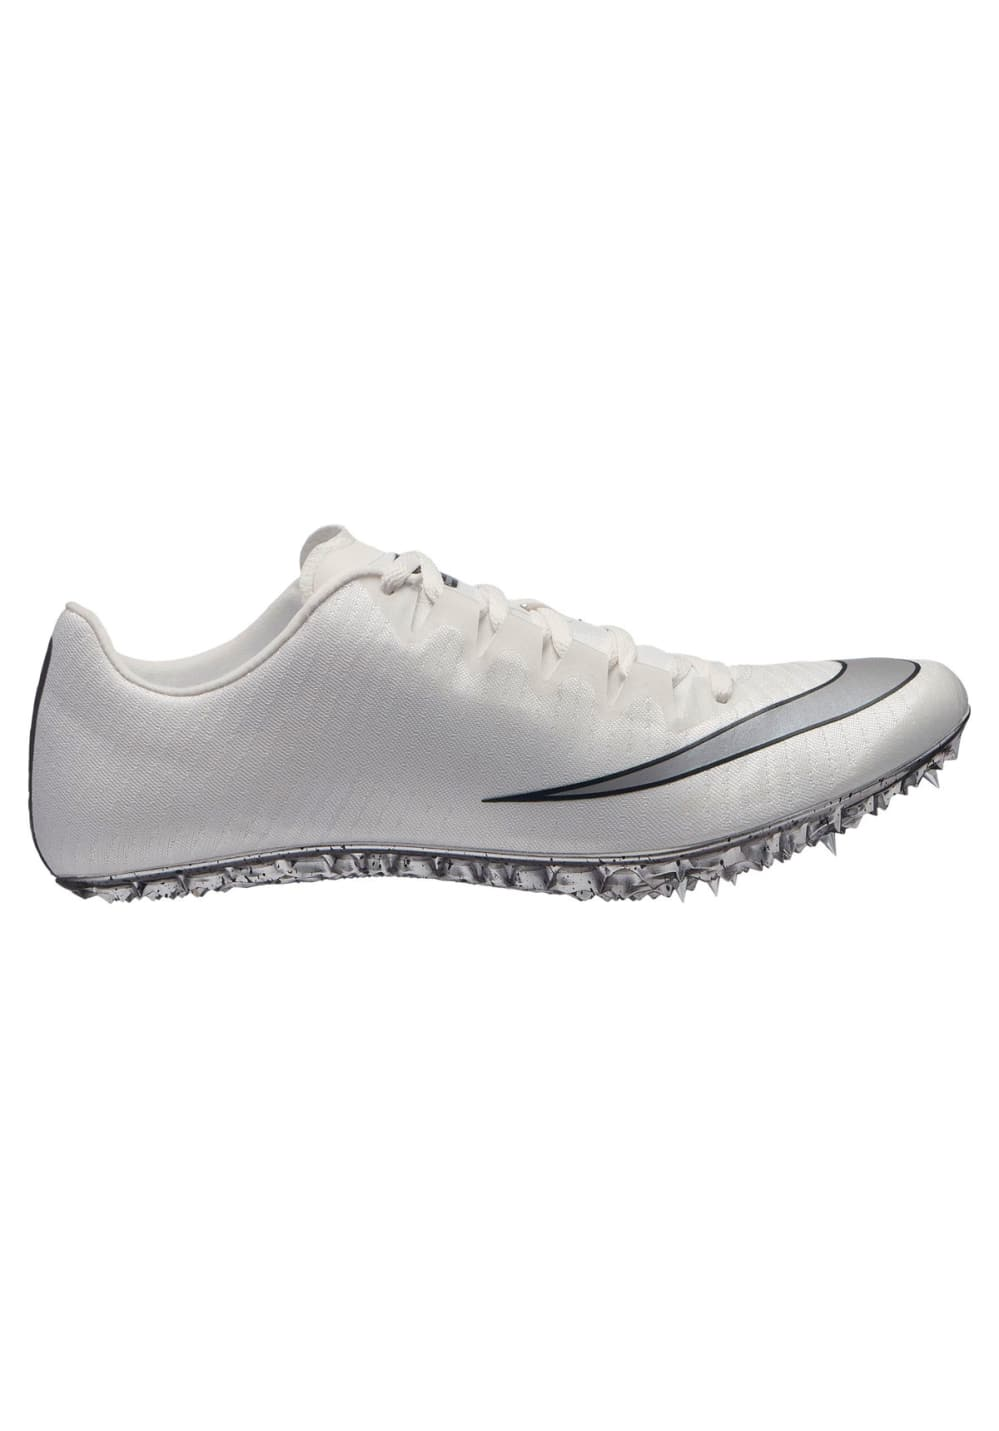 billig Nike Zoom Superfly Elite Spikes - Weiß 9305993f3c